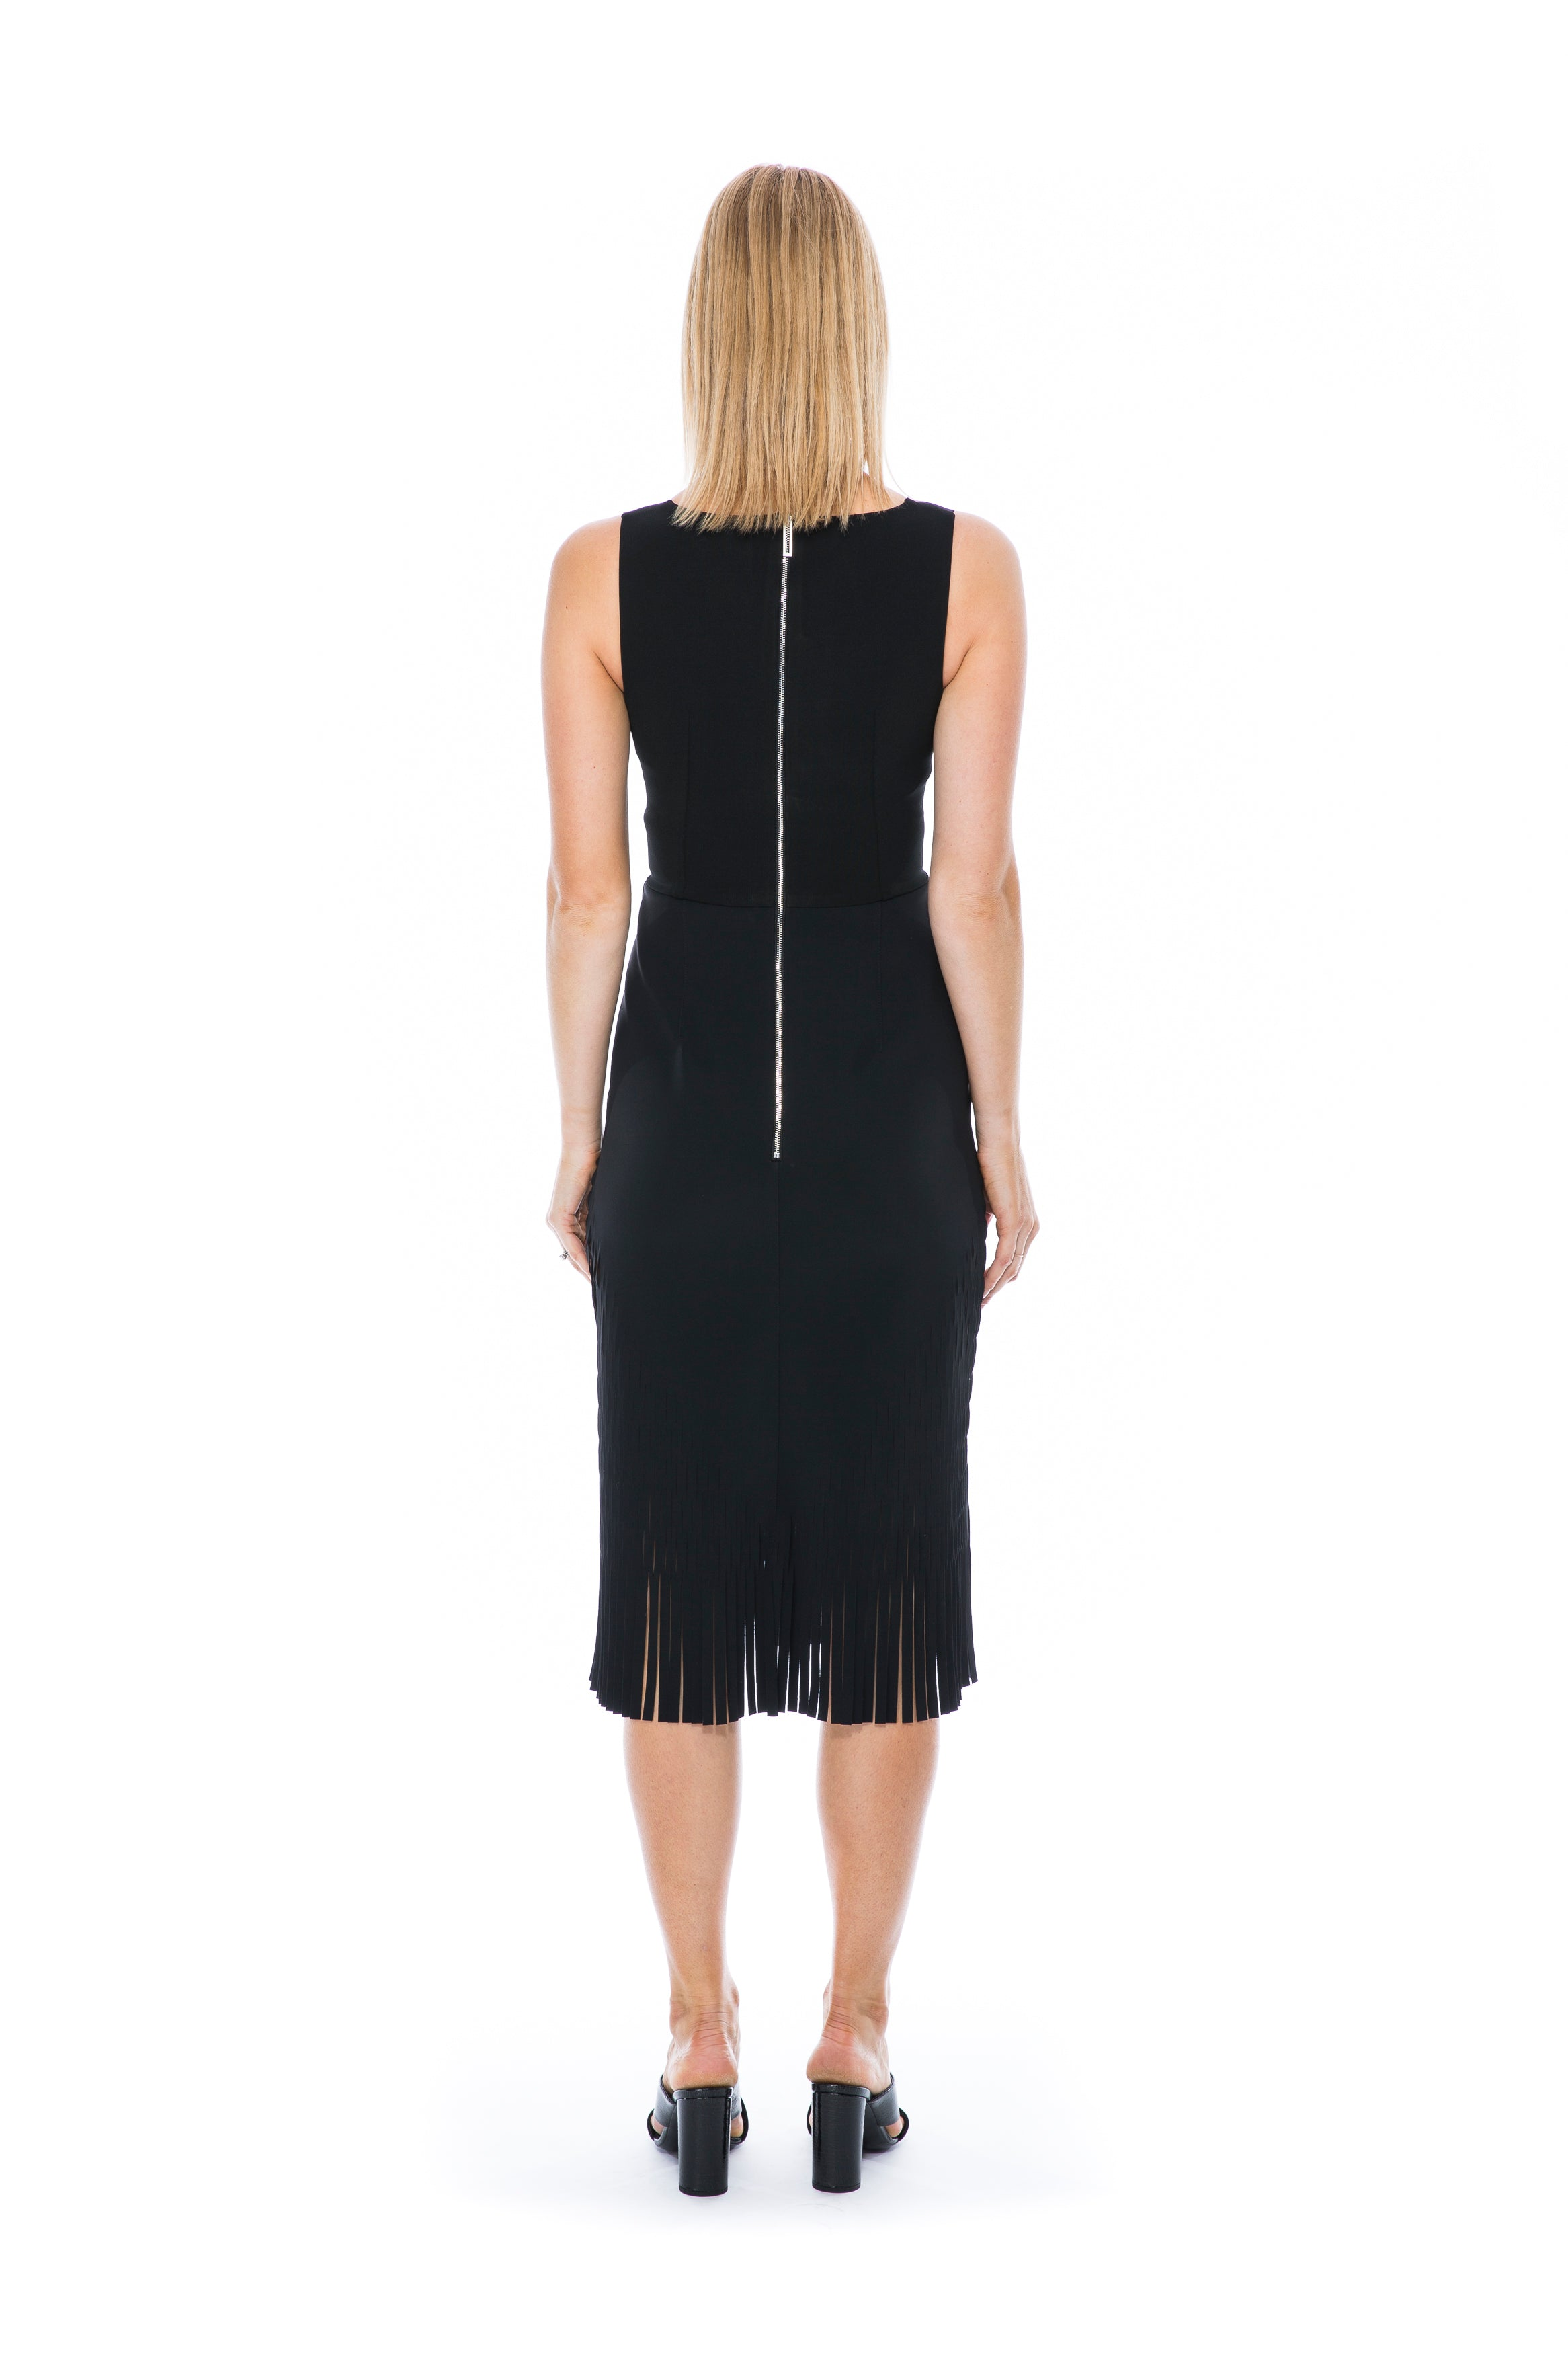 PERFORATED MIRROR DRESS BLACK